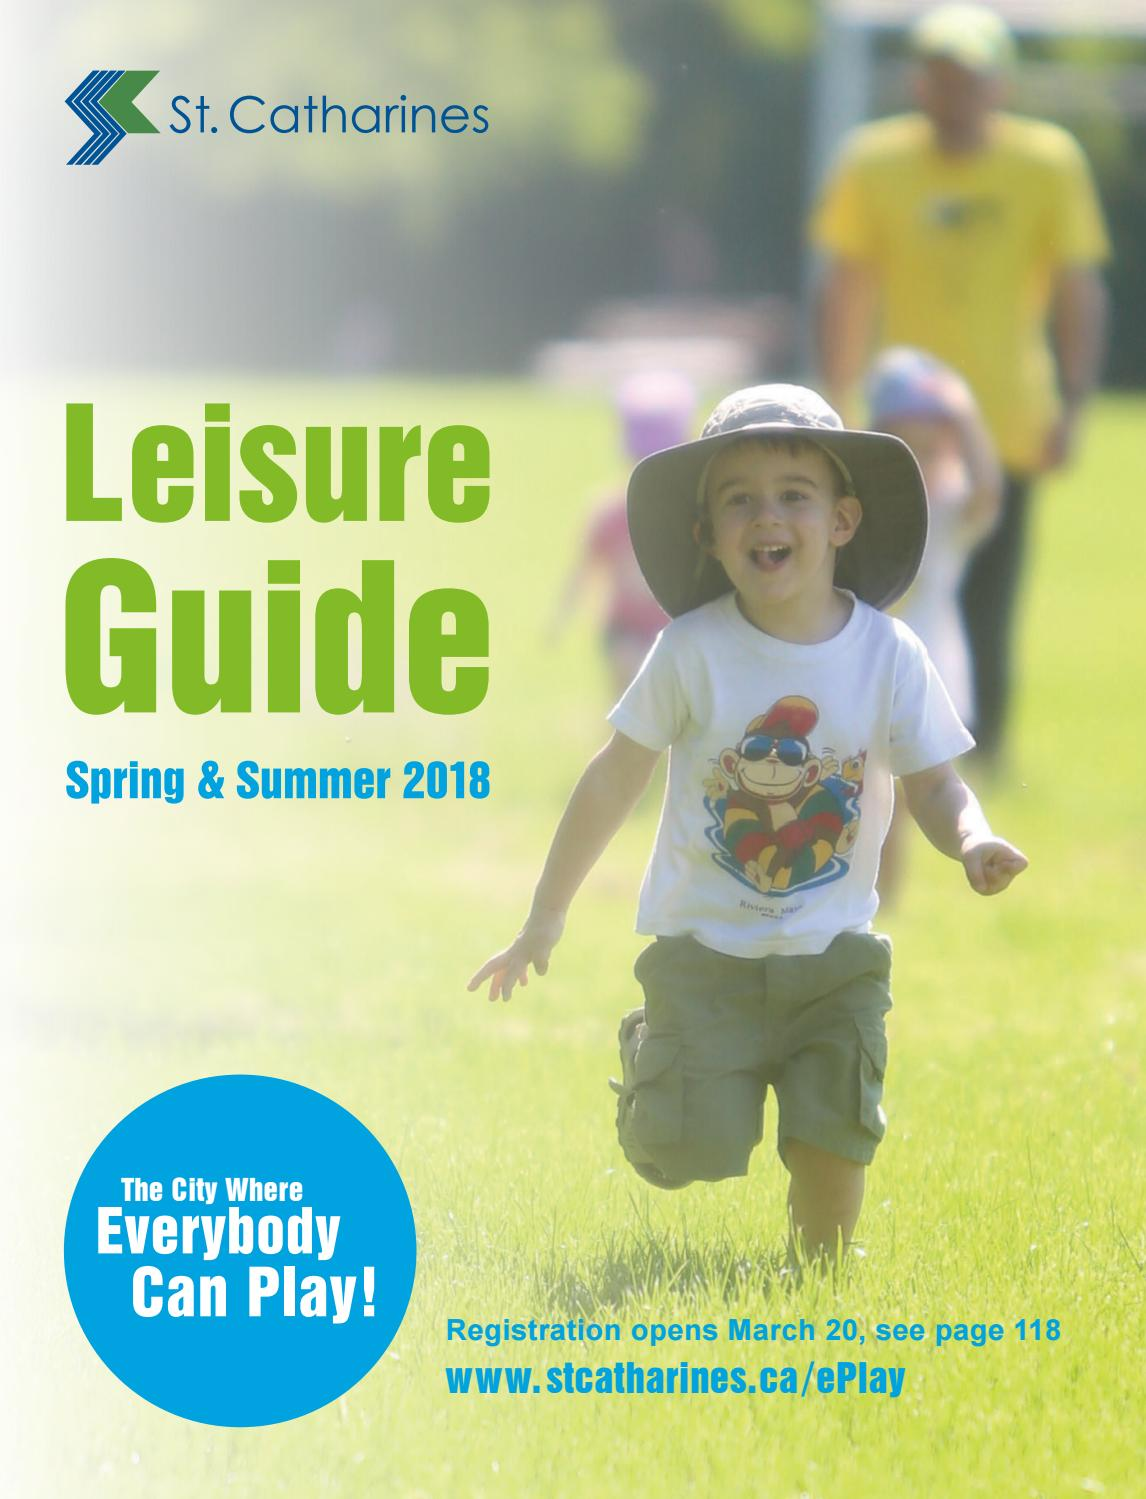 Leisurely Summer Reading Childs Play >> St Catharines Summer 2018 Leisure Guide By Esolutionsgroup Ltd Issuu